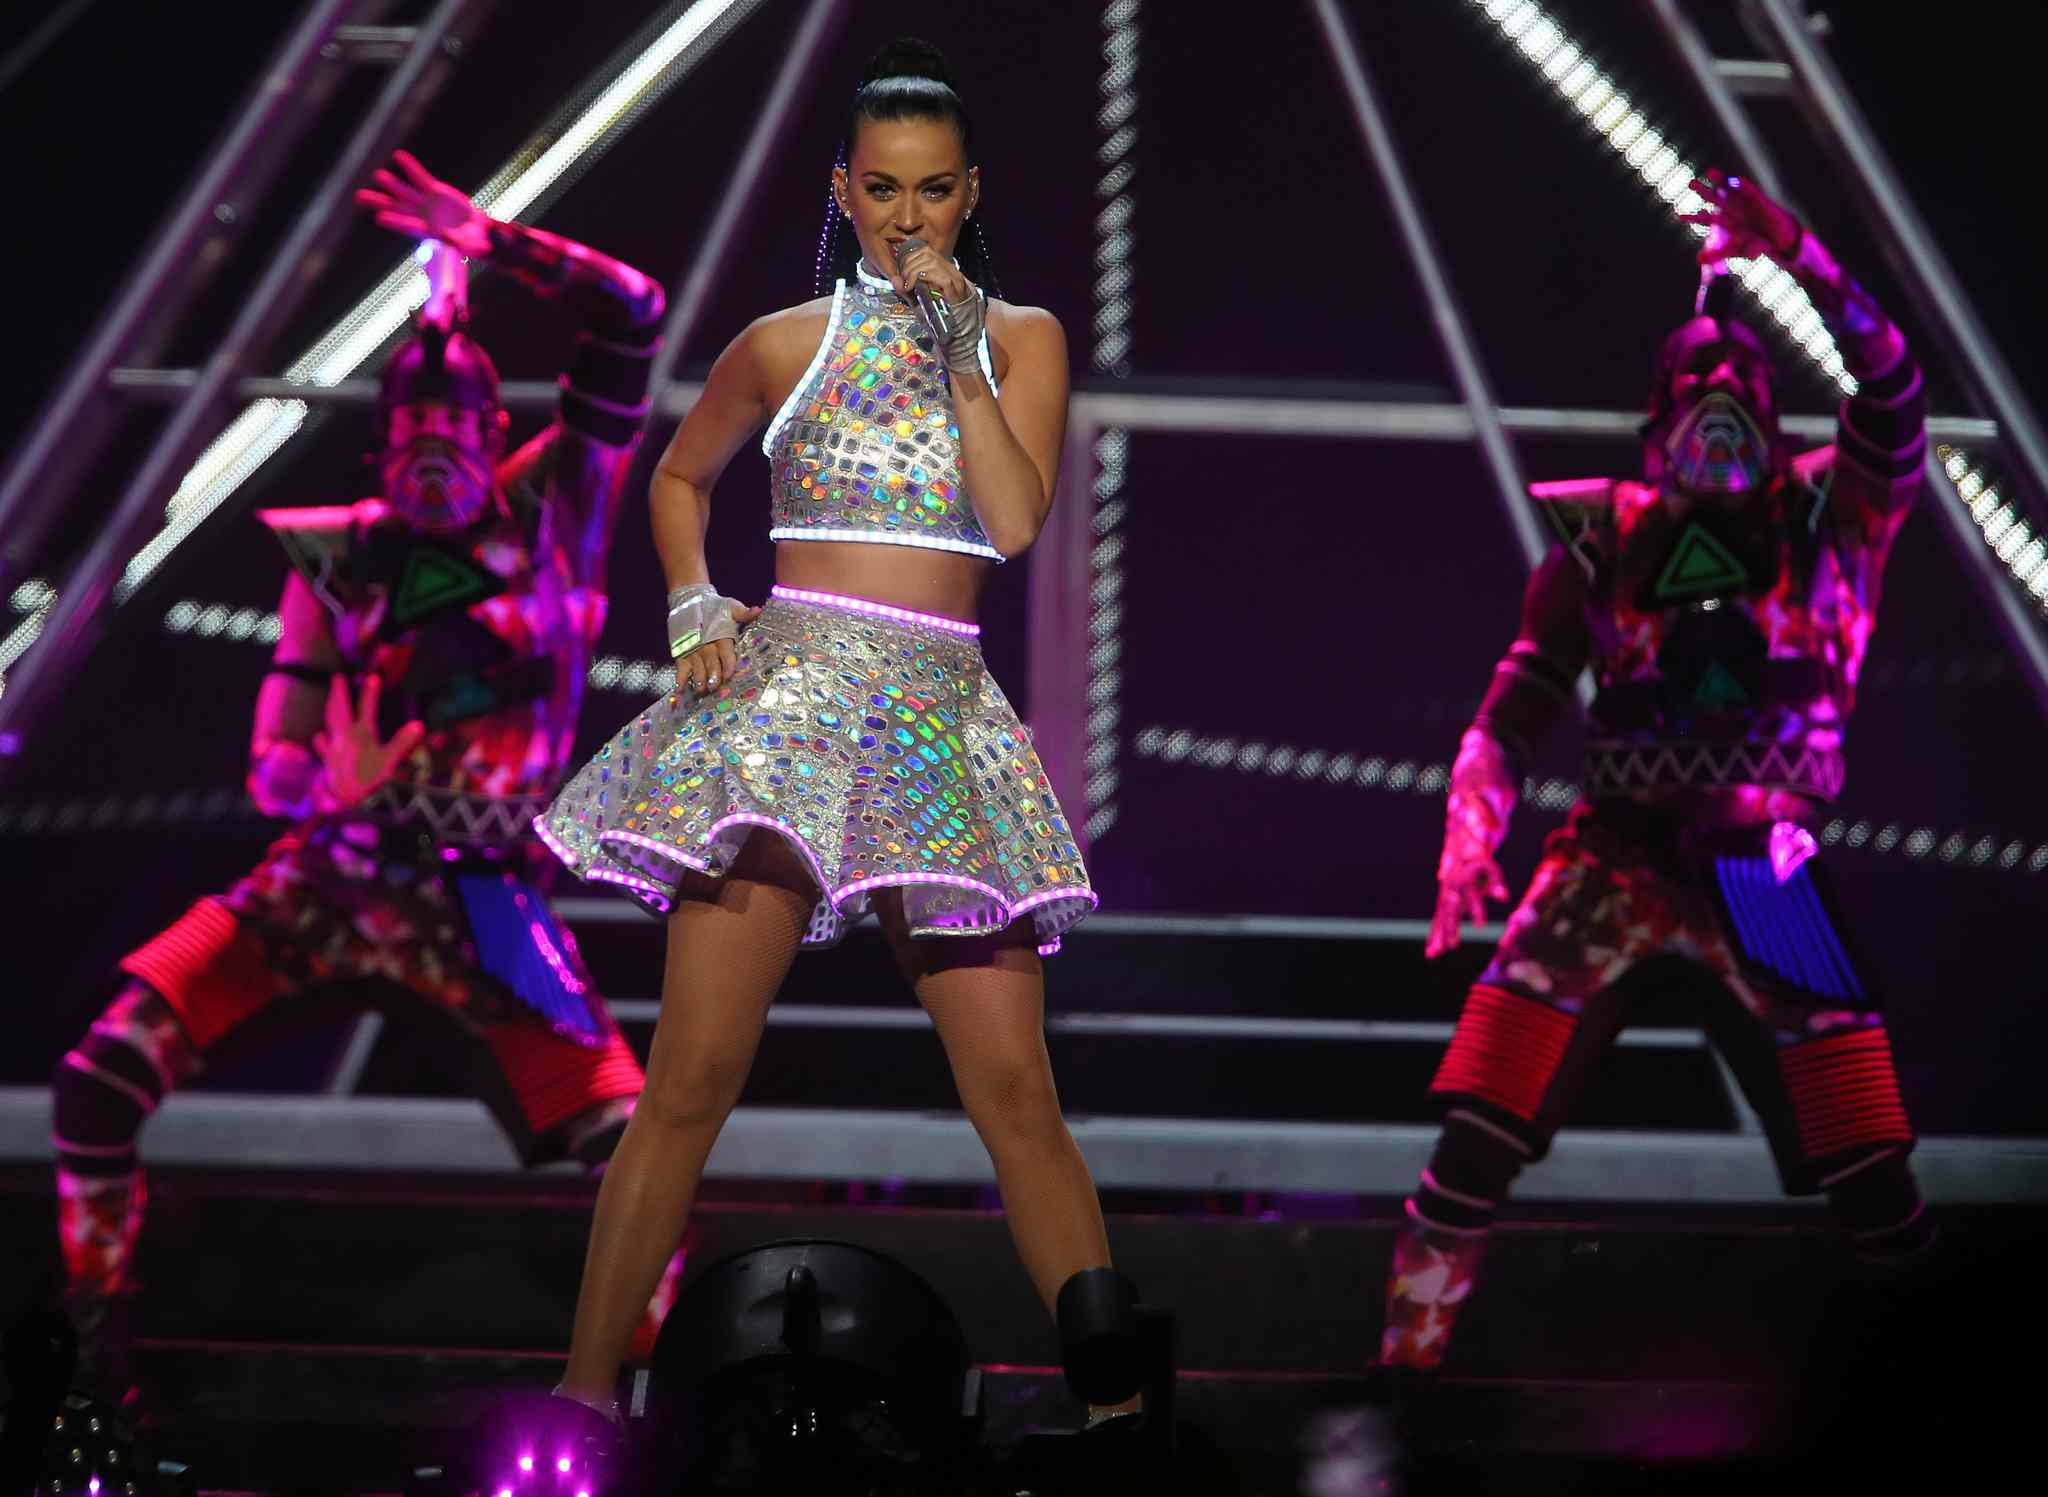 Katy Perry performs at Winnipeg's MTS Centre Tuesday, Aug. 26.